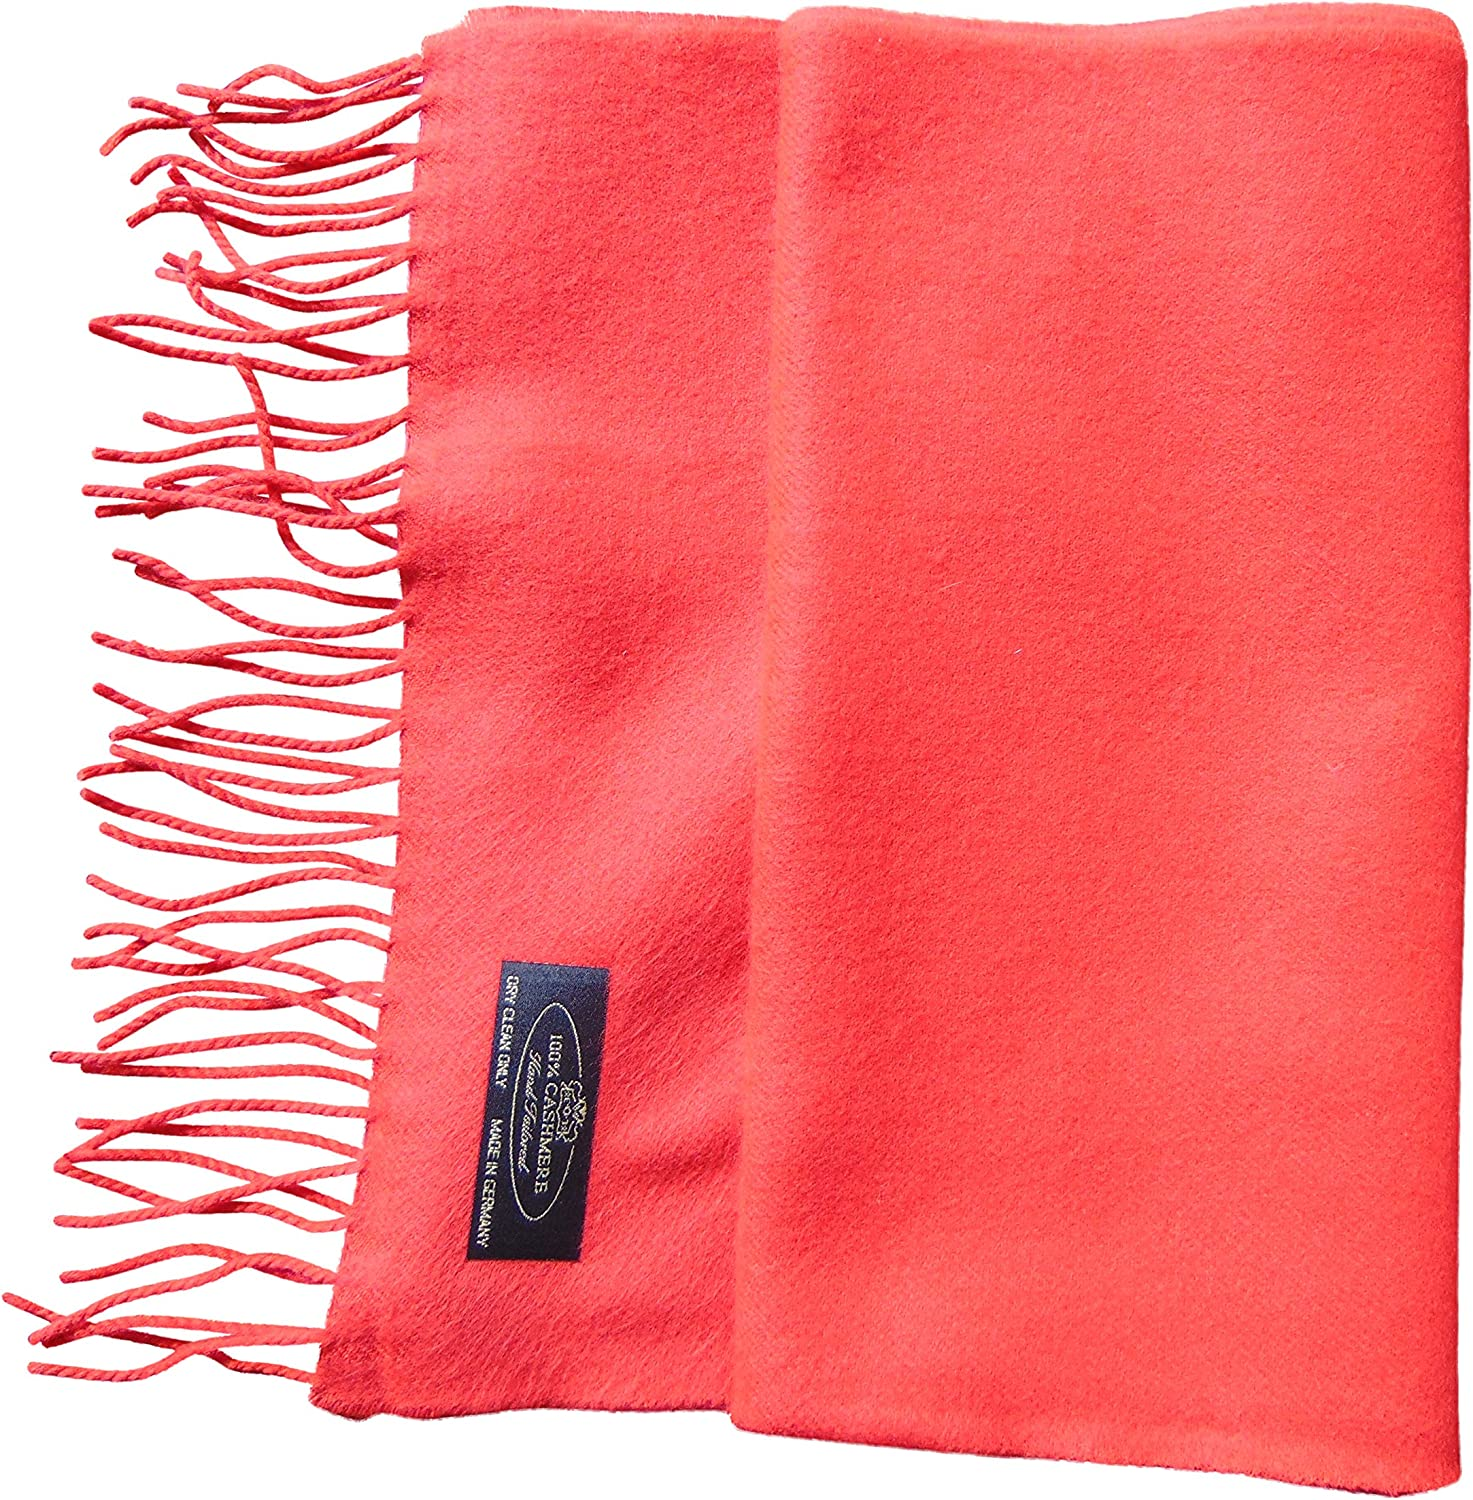 """Annys Super Soft 100% Cashmere Scarf 12""""x72"""" with Gift Bag"""